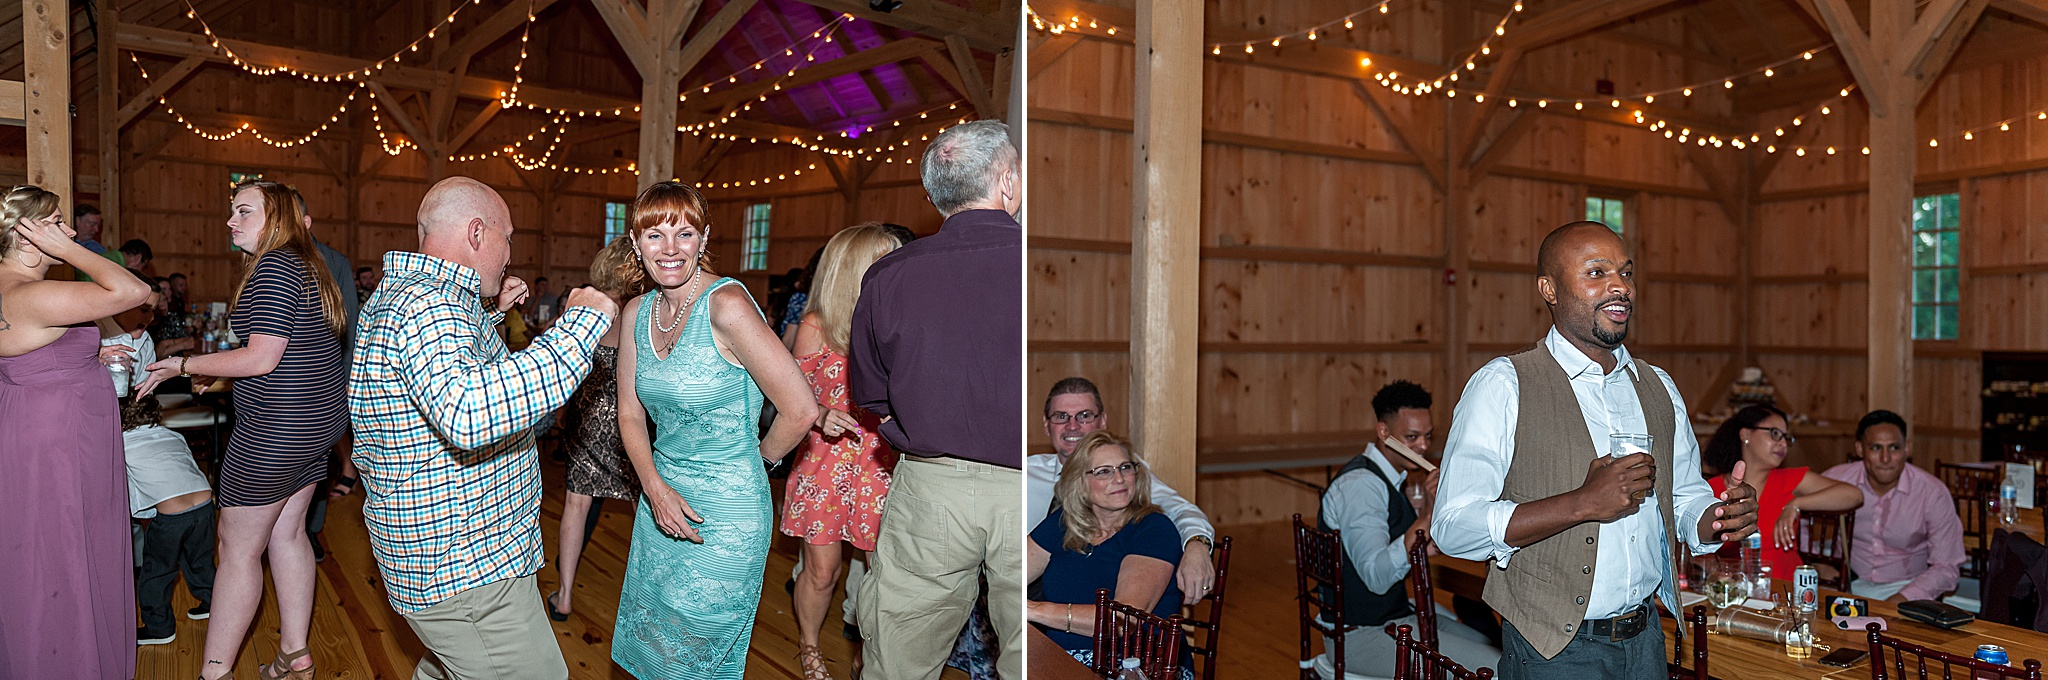 Wendy Zook Photography_Frederick MD wedding photographer__0090.jpg